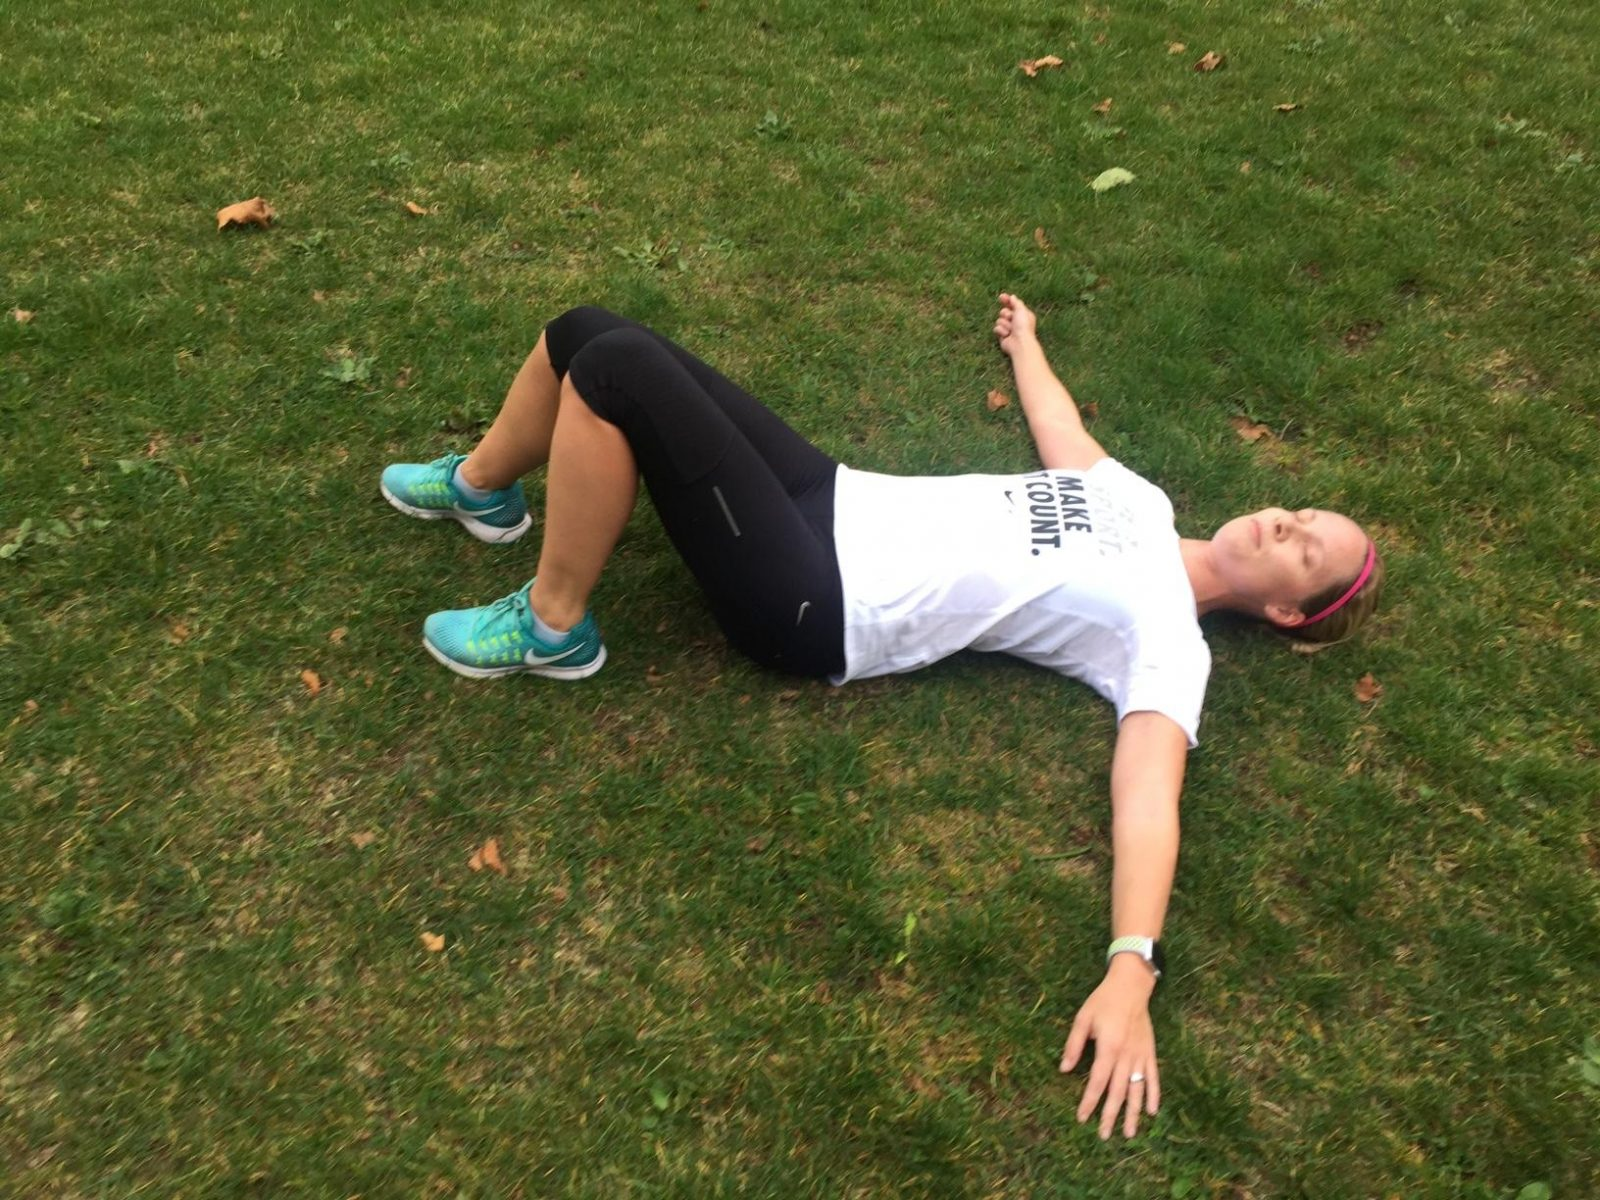 Sometimes you just gotta collapse in the grass after a tough 5K.